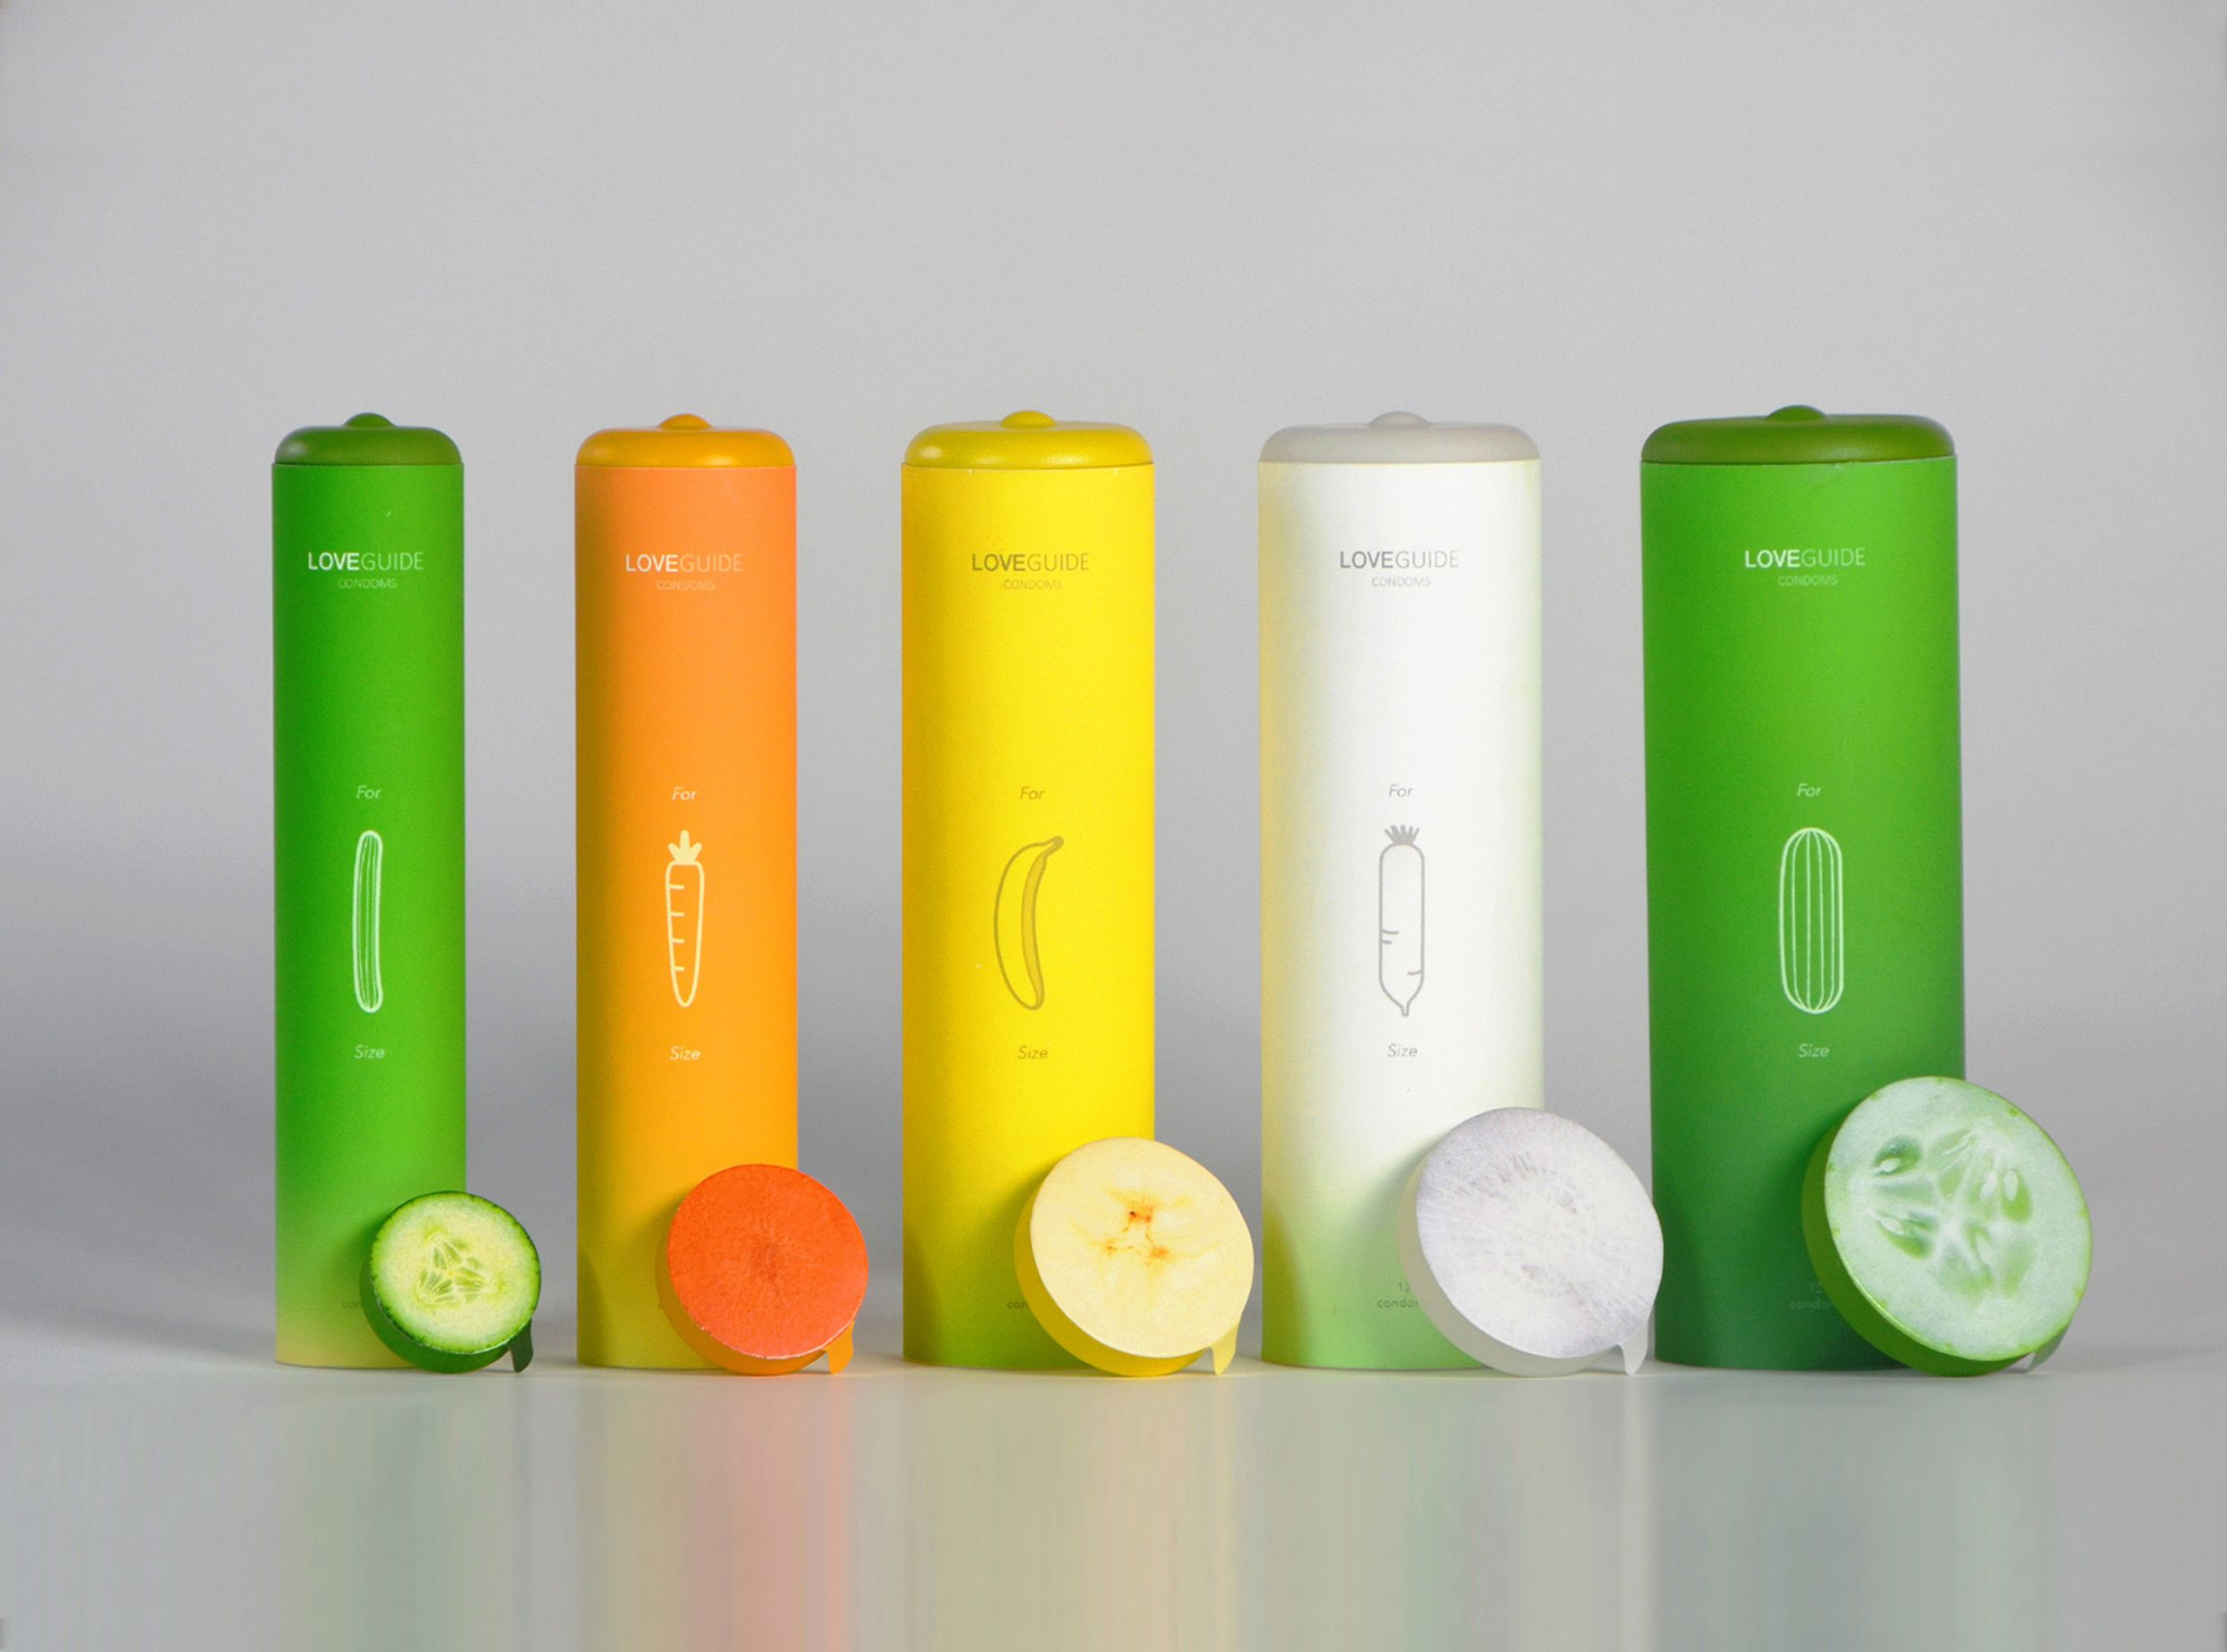 Designing the Next Generation of Condom Packaging